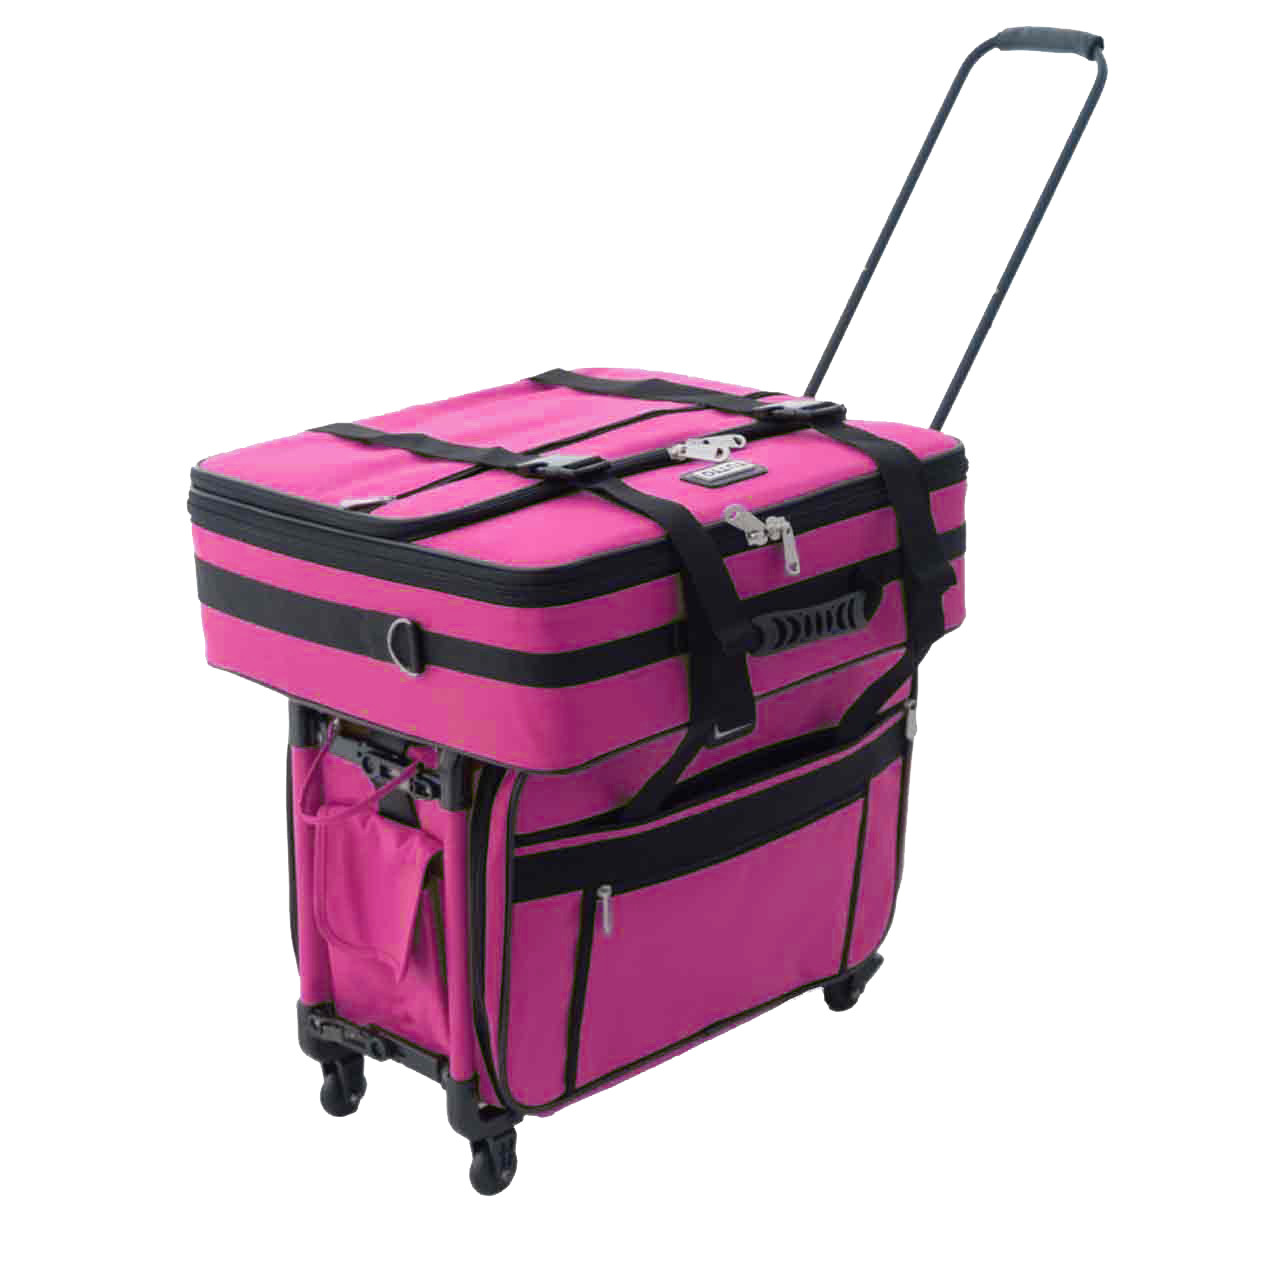 Great Companion Bag: carry individually with handle or shoulder strap. Also can stack on top of Tutto Machine On Wheels, Tutto Serger On Wheels or any Tutto 4-wheel case.